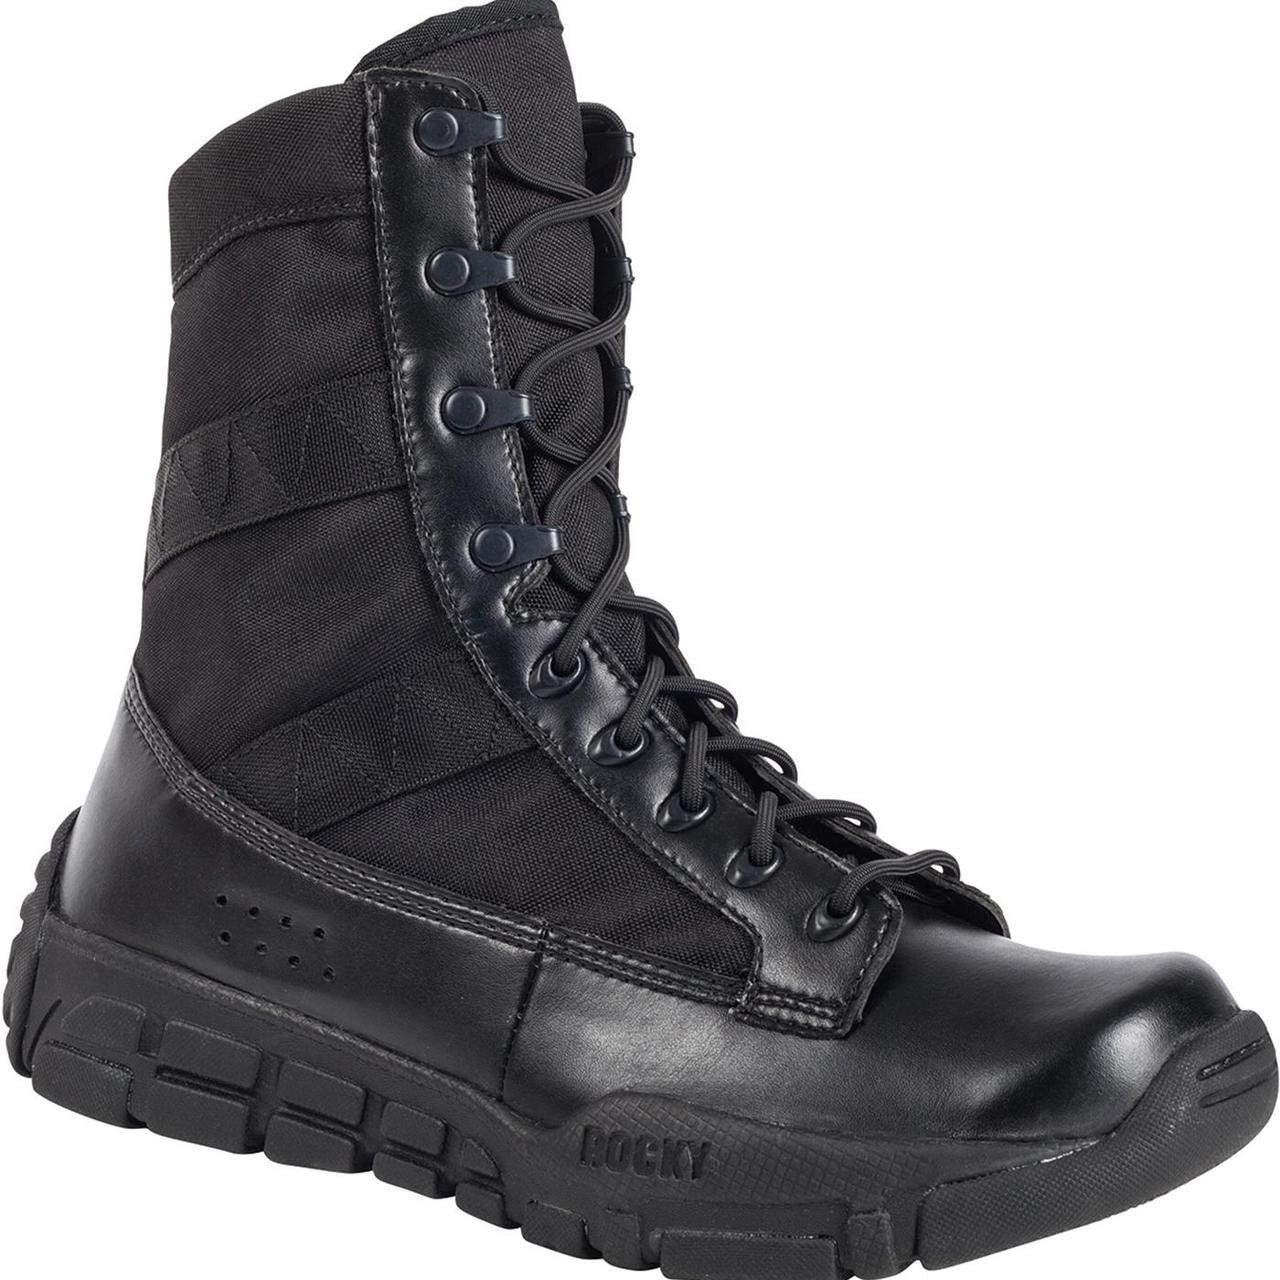 ROCKY C4T TRAINER MILITARY DUTY BOOTS BLACK - EMPIRE TACTICAL Store eeb97af6f